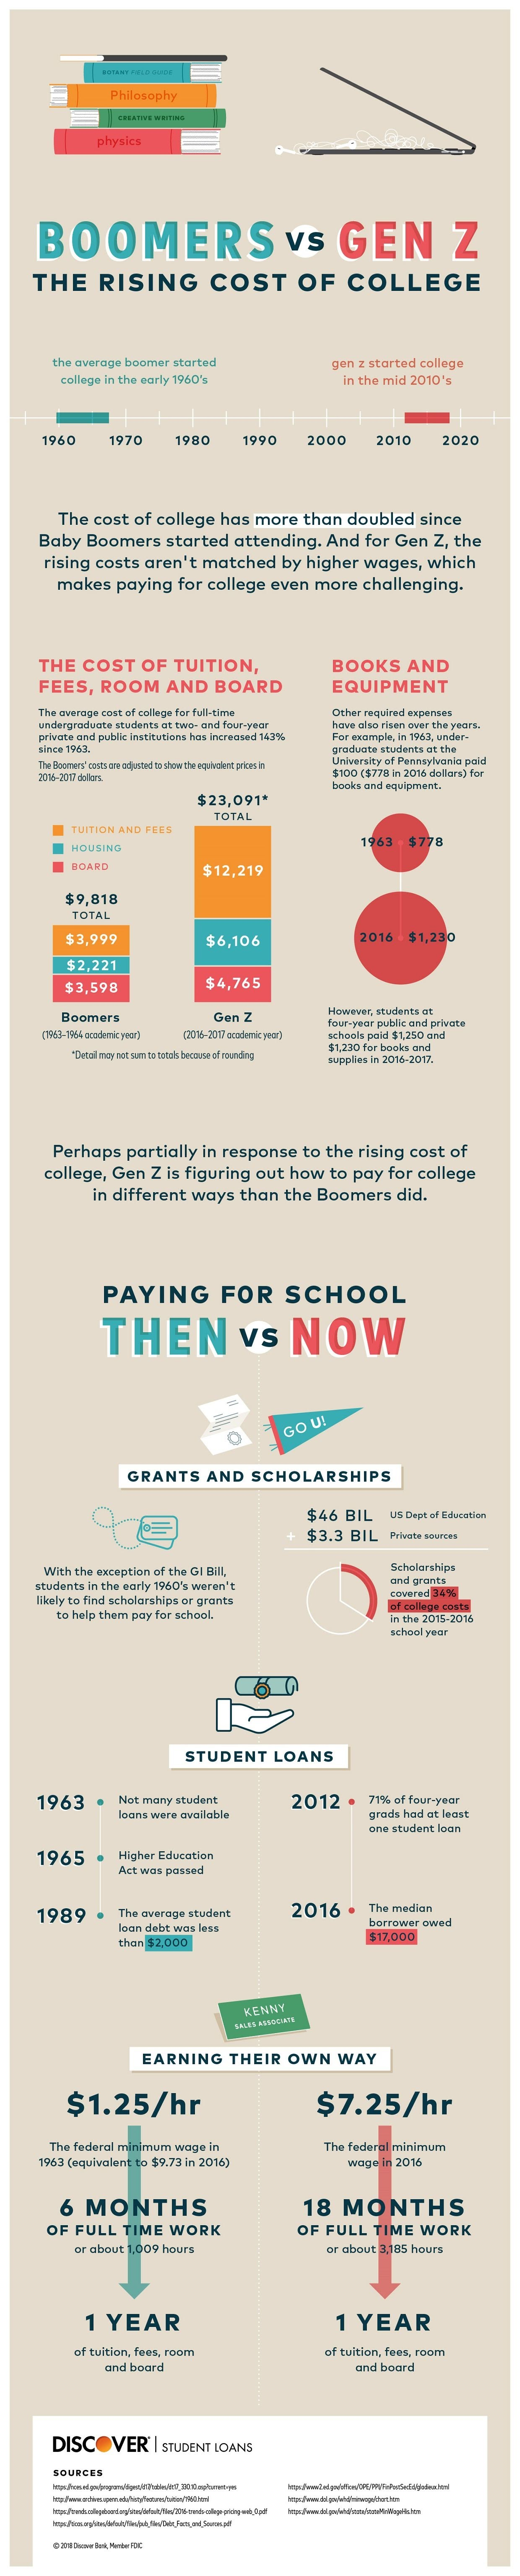 The Rising Cost of College #infographic